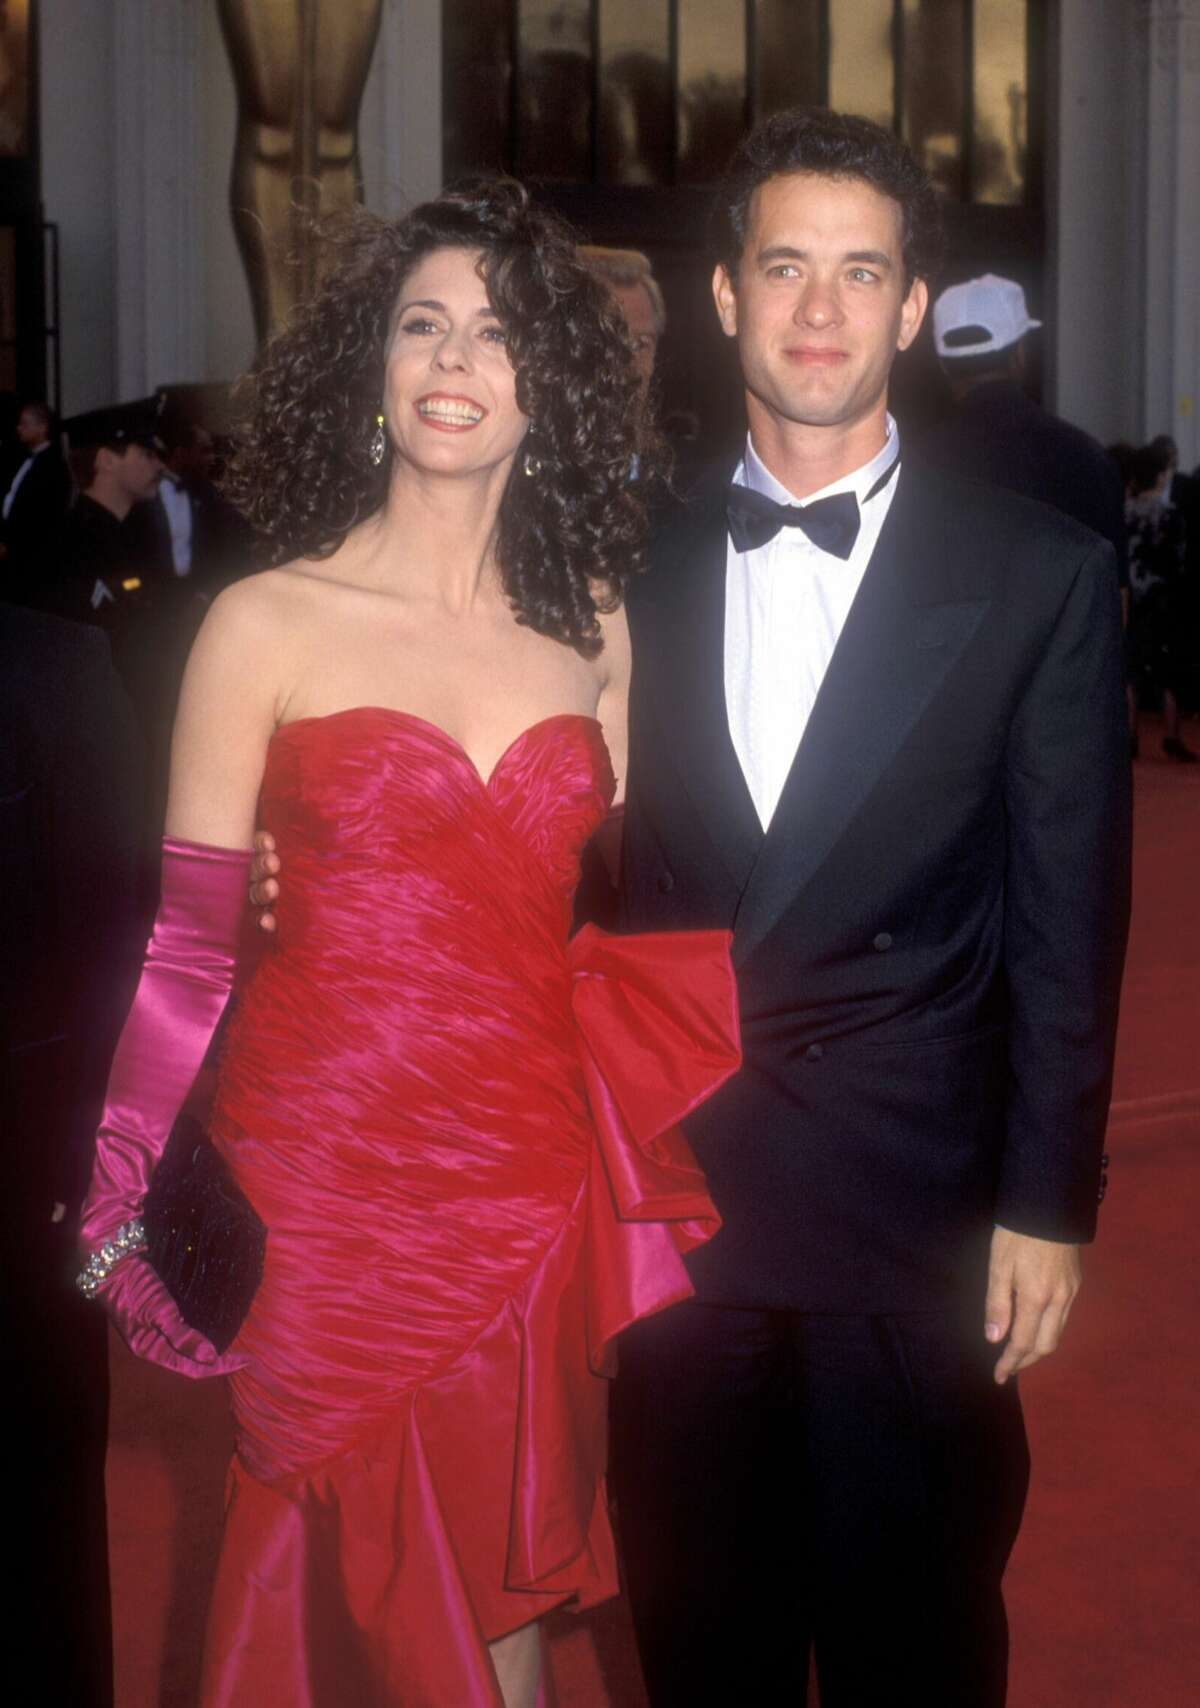 Rita Wilson and Tom Hanks arrive at the61st Annual Academy Awards on March 29, 1989. They celebrated their 29th wedding anniversary in 2017.